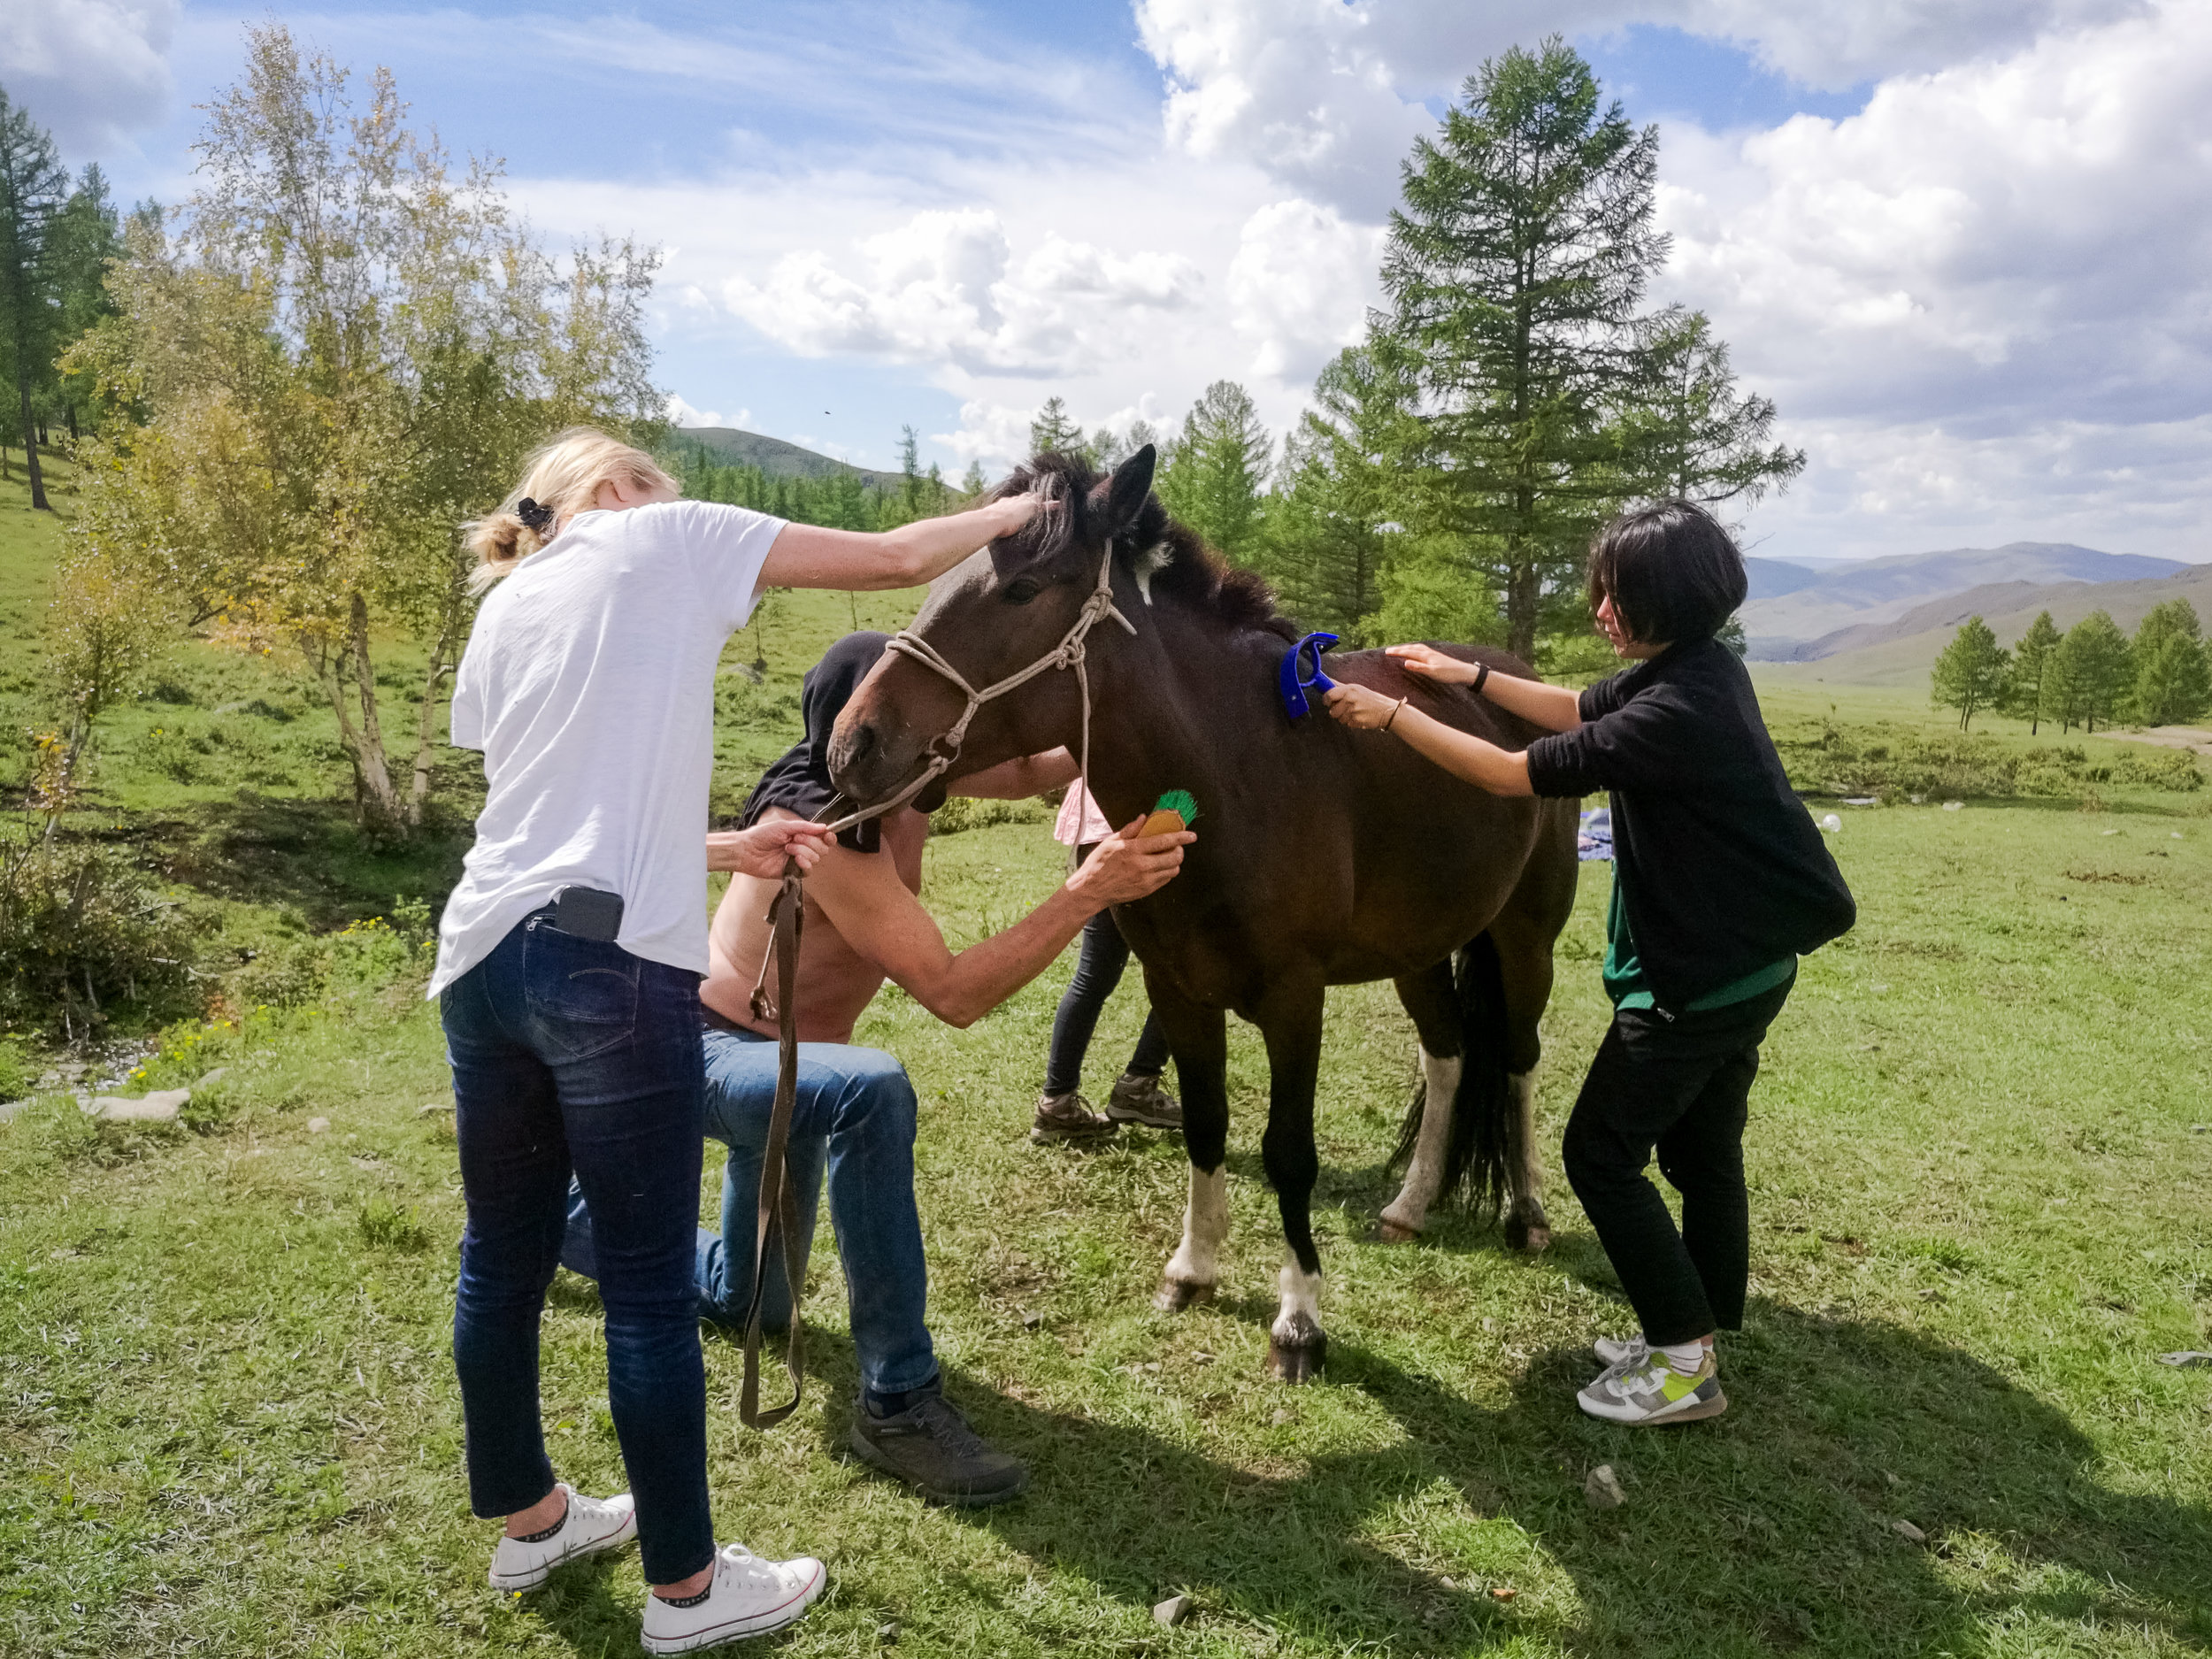 Learn to ride horses like a Mongolian - Get to know a breed of horse that has existed for hundreds of years